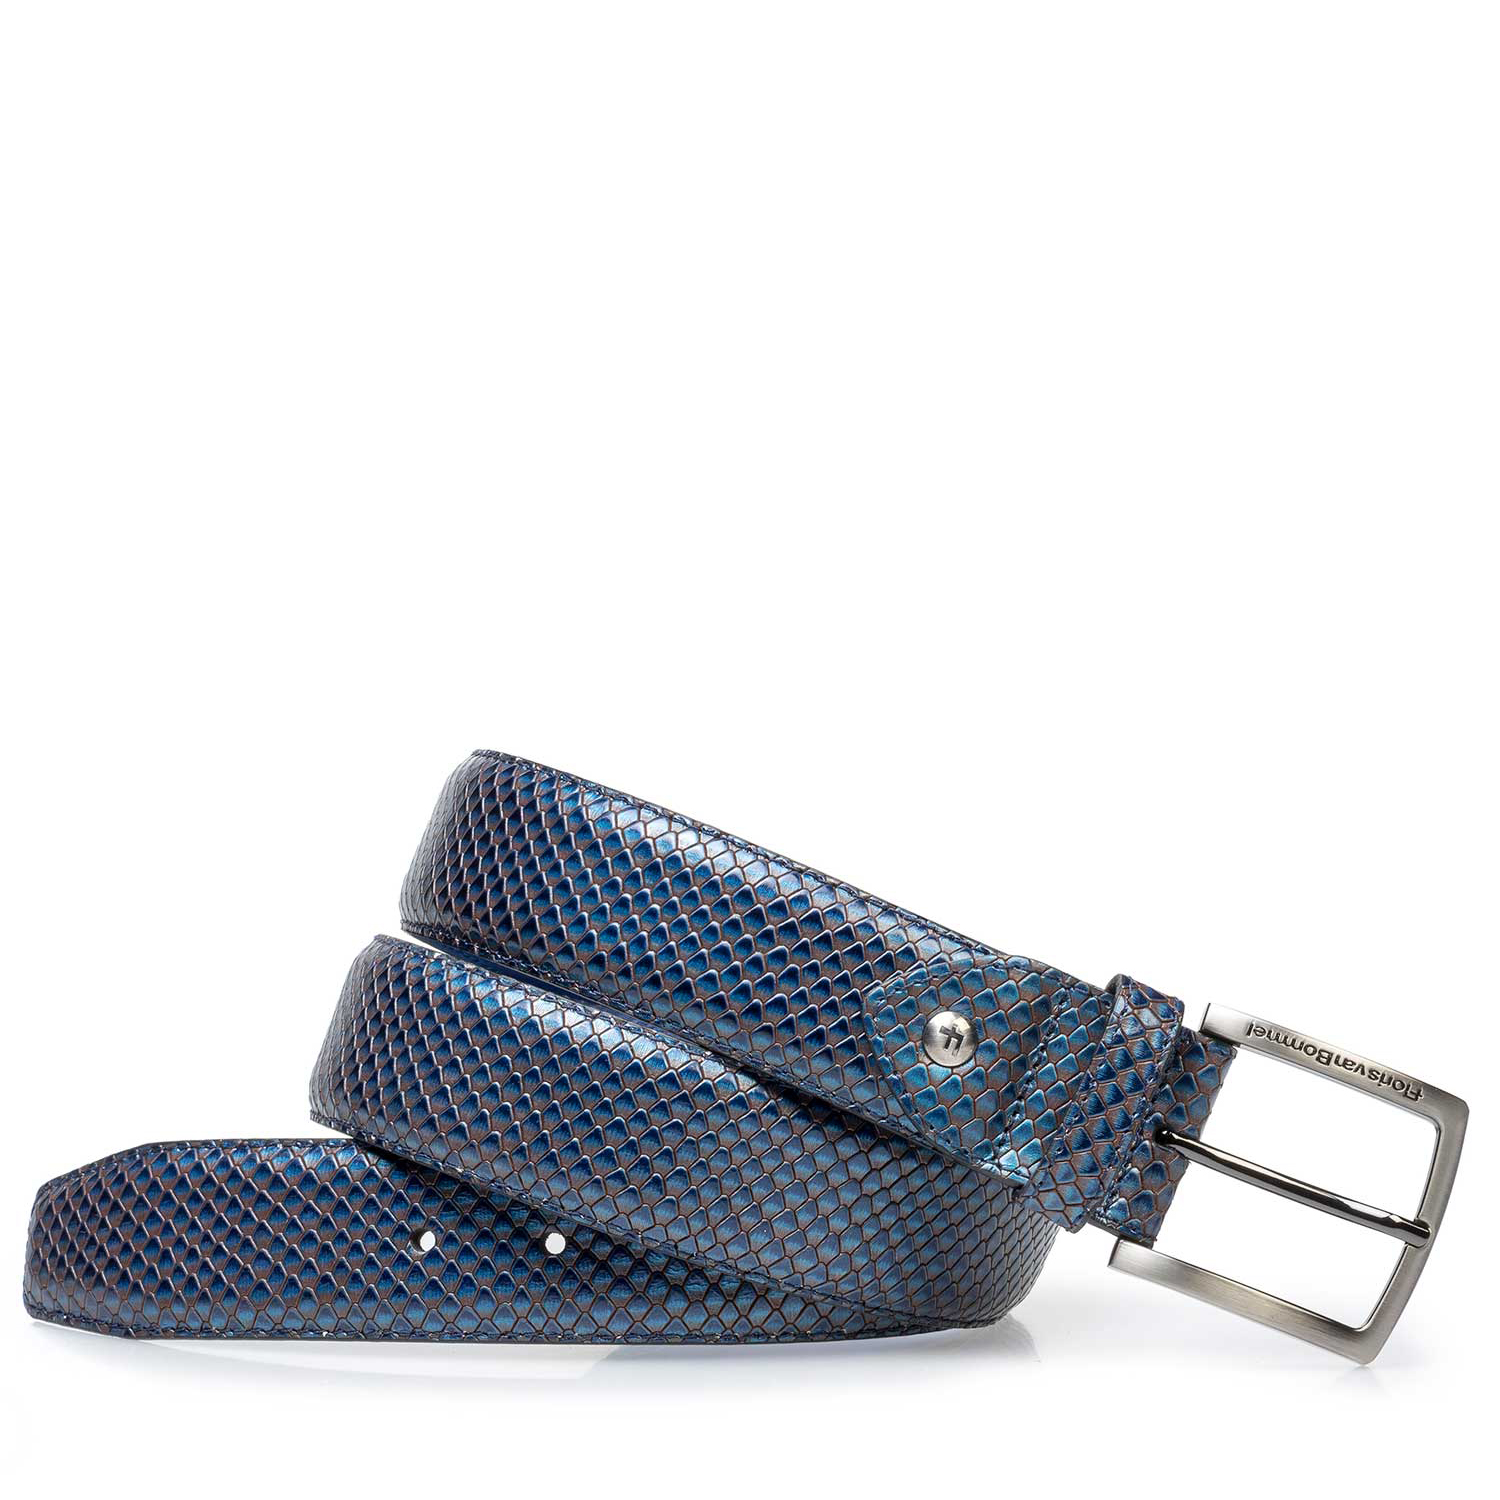 75202/17 - Premium blue printed metallic leather belt